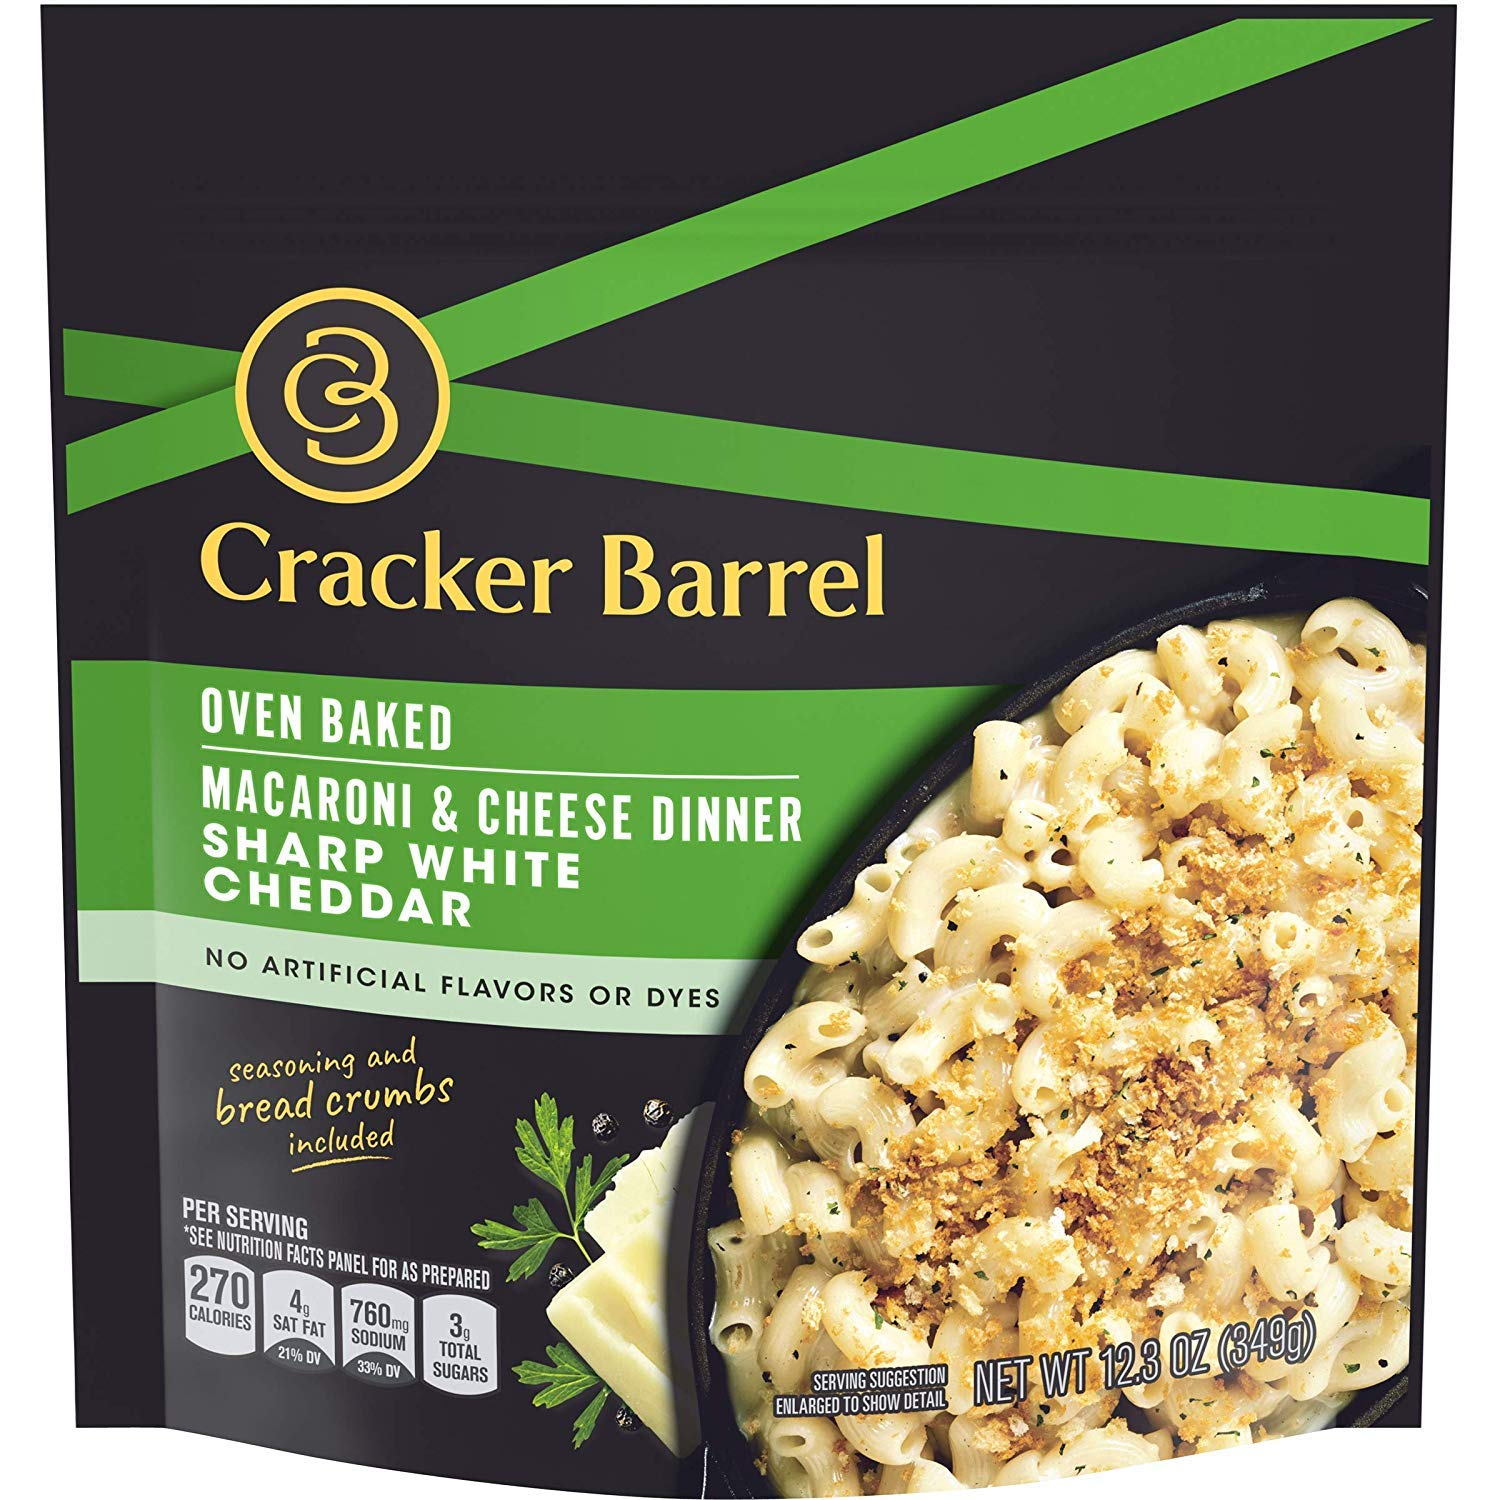 Cracker Barrel Oven Baked Sharp White Cheddar Macaroni and Cheese Dinner, 12.3 oz Pouch (3)